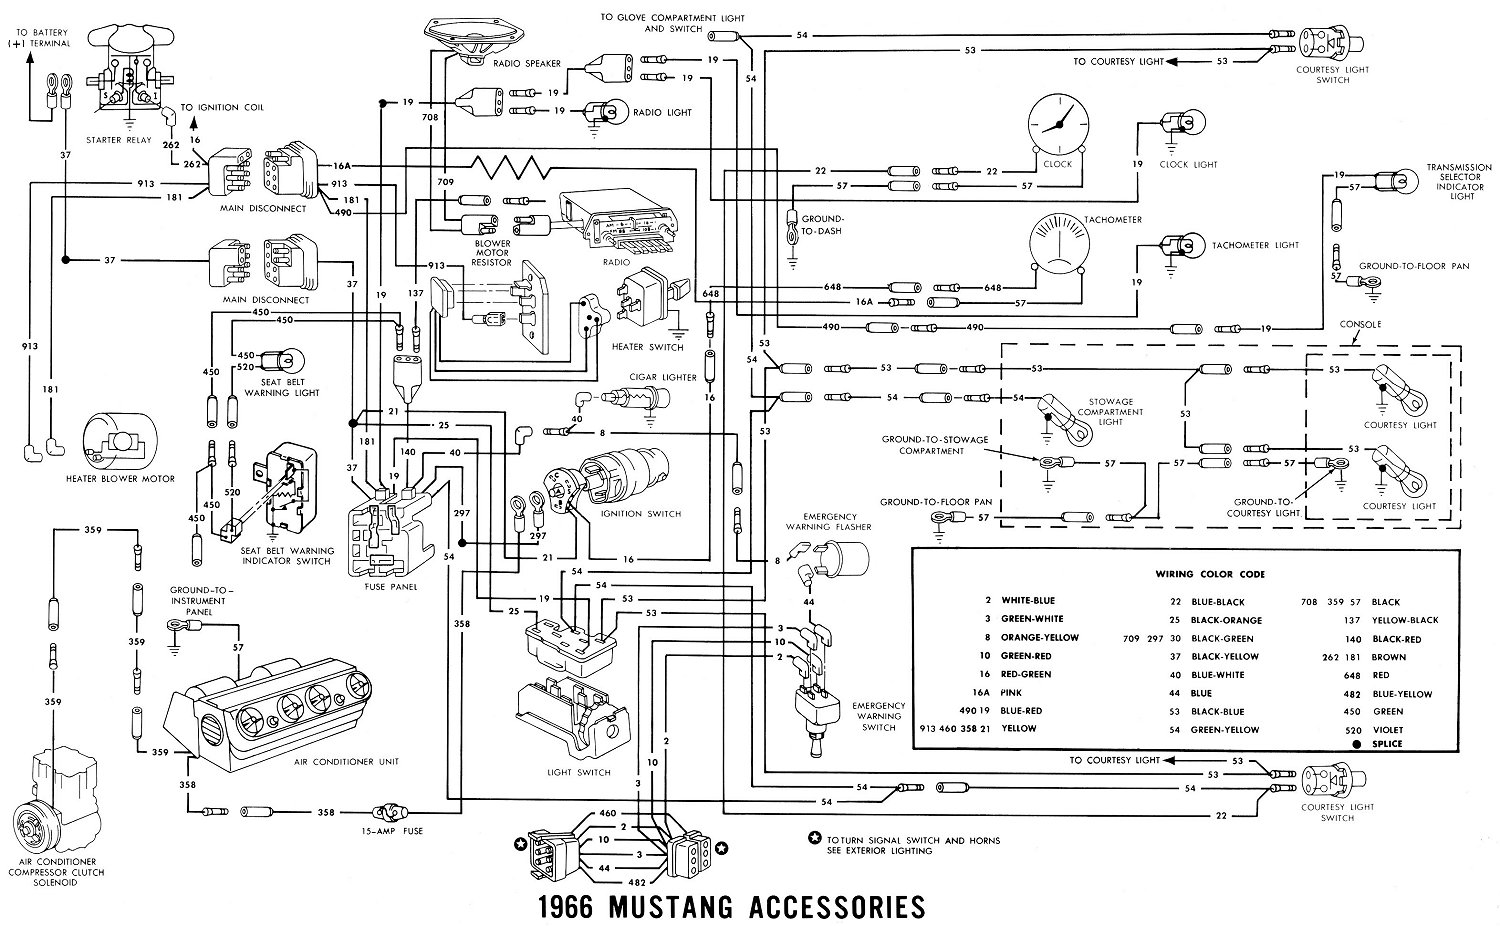 distributor wiring diagram for a 73 mustang